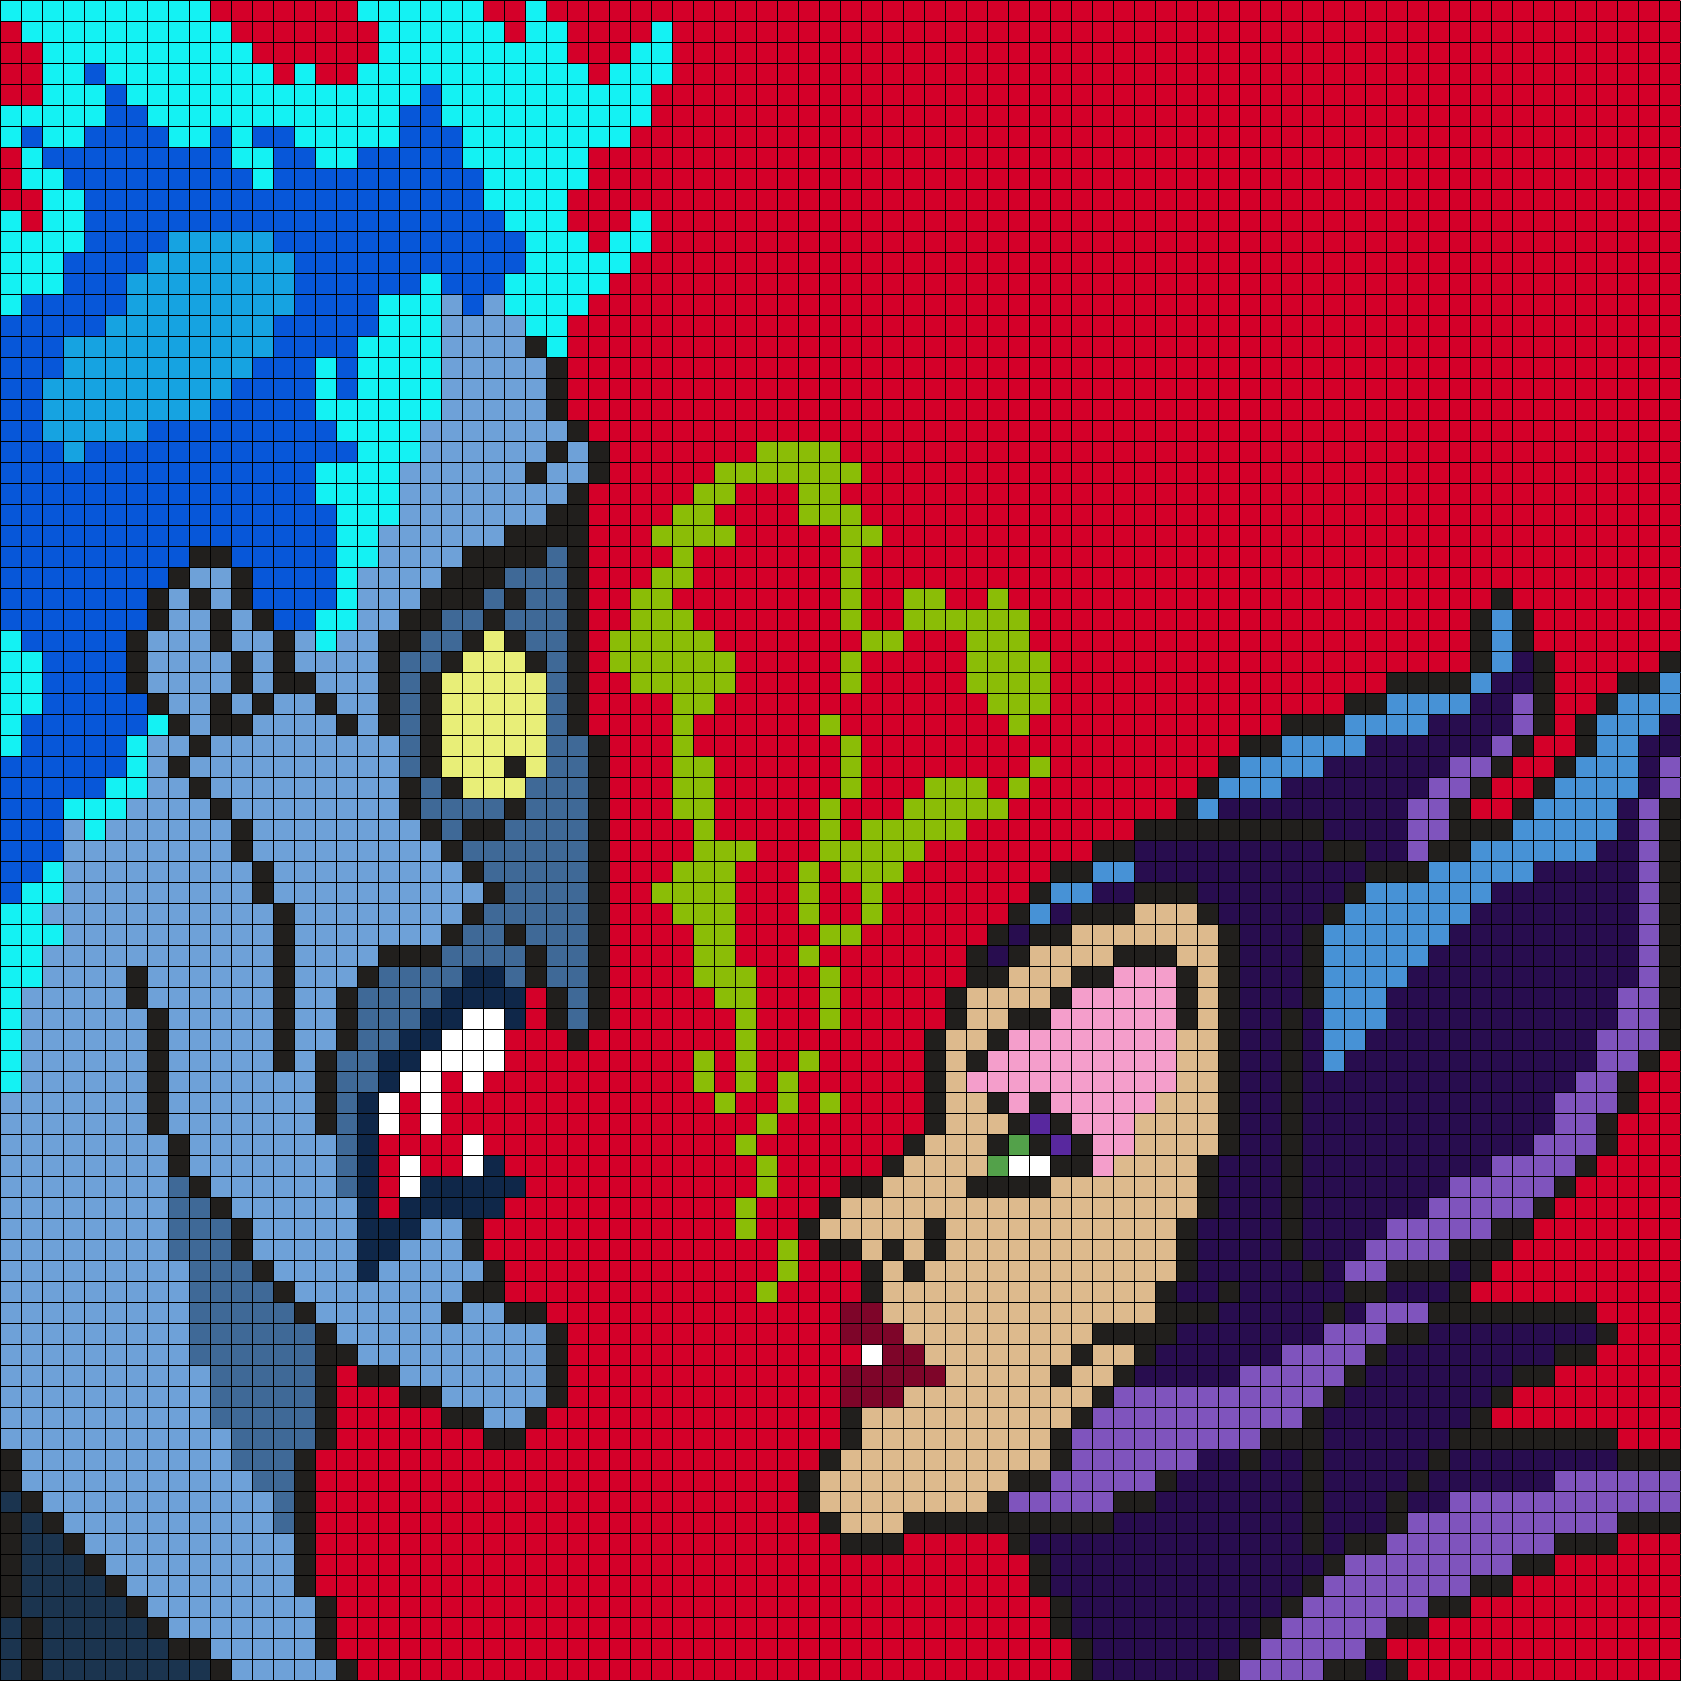 Hades And Maleficent (Square) by Maninthebook on Kandi Patterns